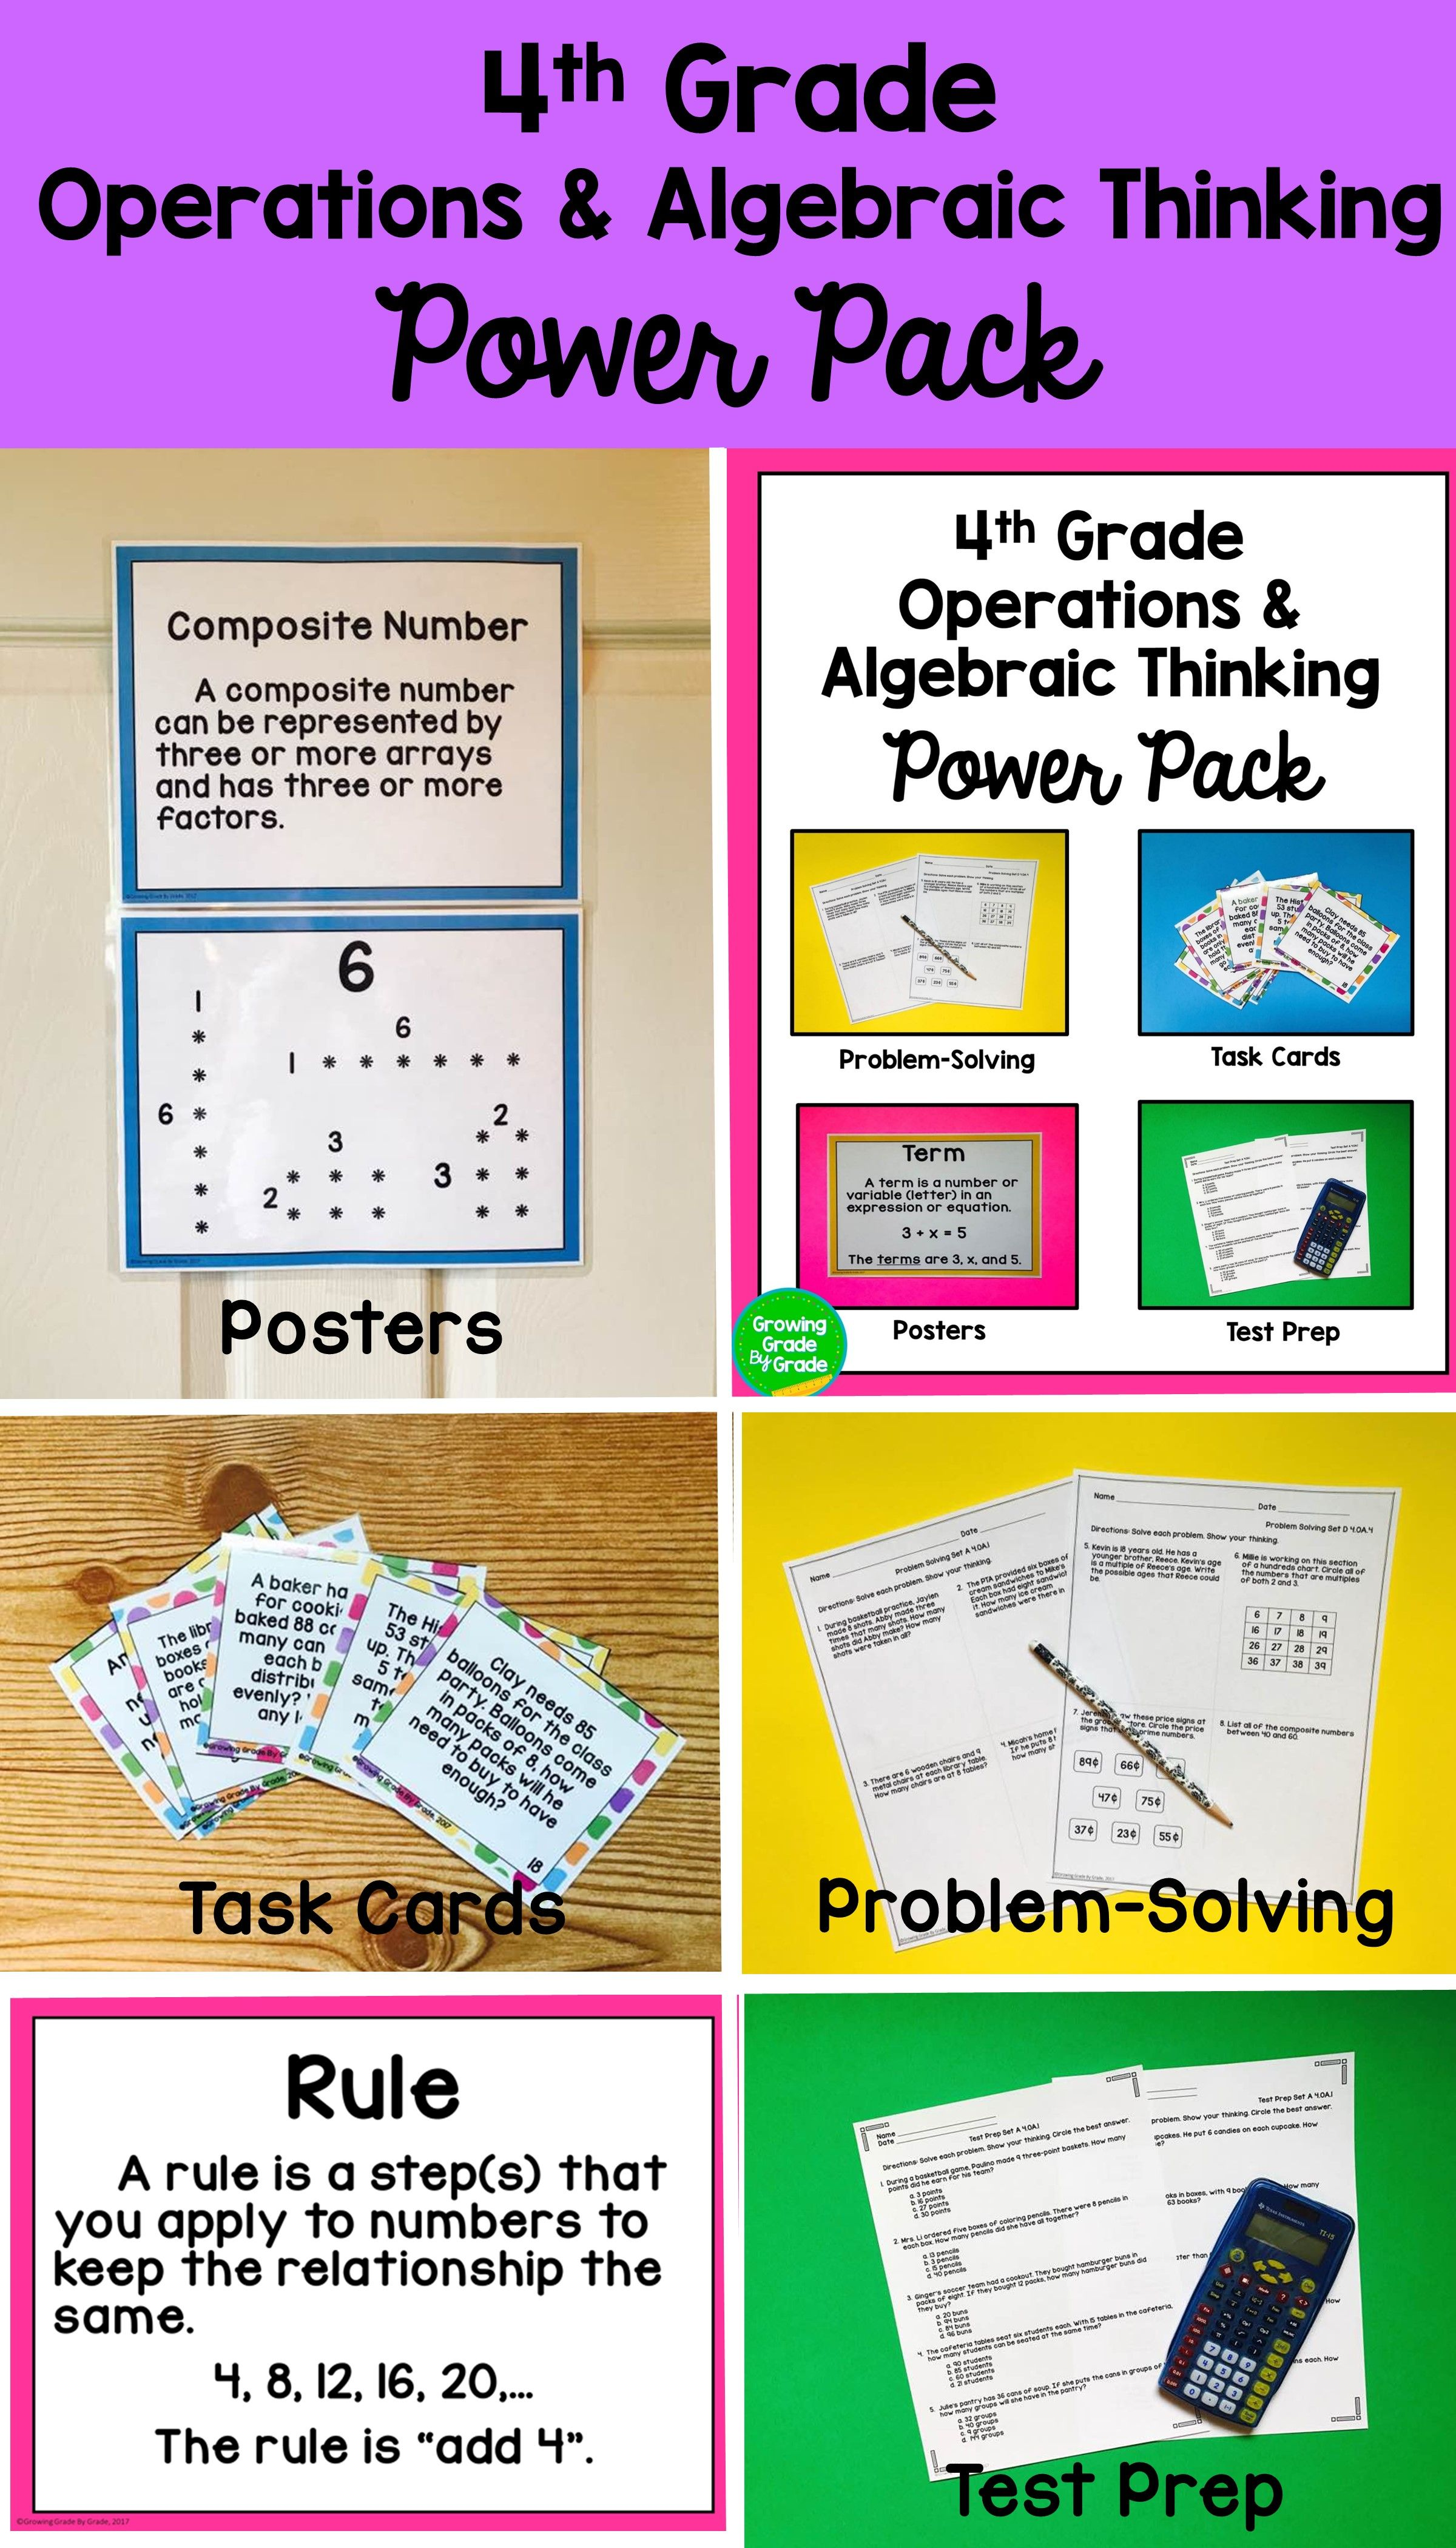 Feel Confident With Four Ways To Master 4 Oa Skills You Can Offer Students Task Card Experienc Algebraic Thinking 4th Grade Math Worksheets Math Spiral Review